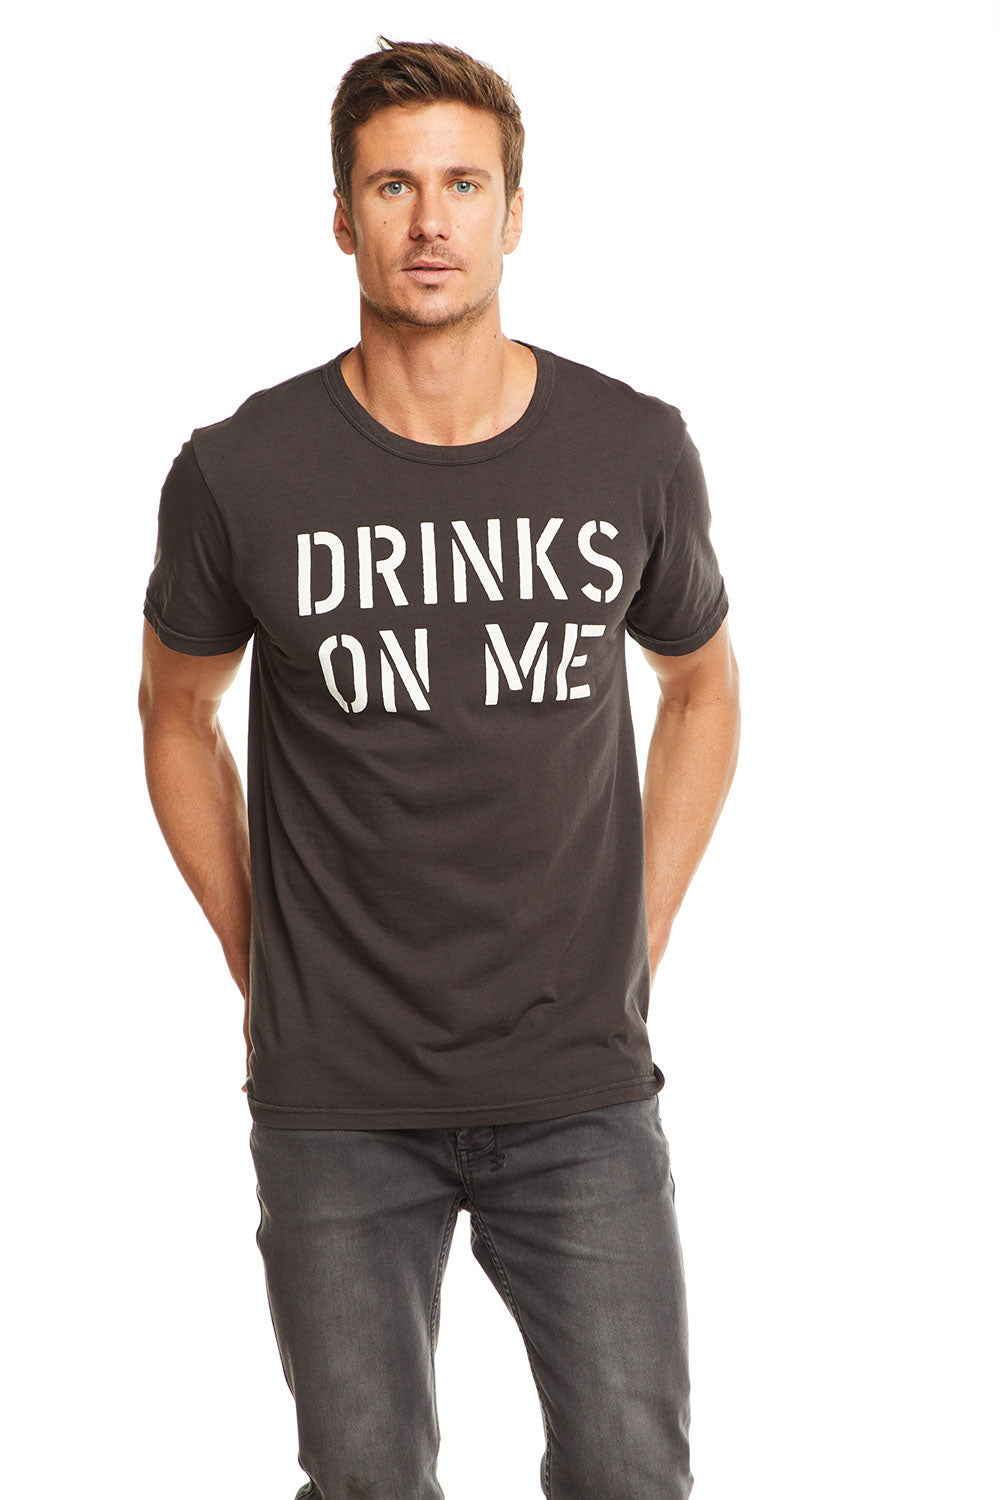 Drinks On Me, MENS, chaserbrand.com,chaser clothing,chaser apparel,chaser los angeles